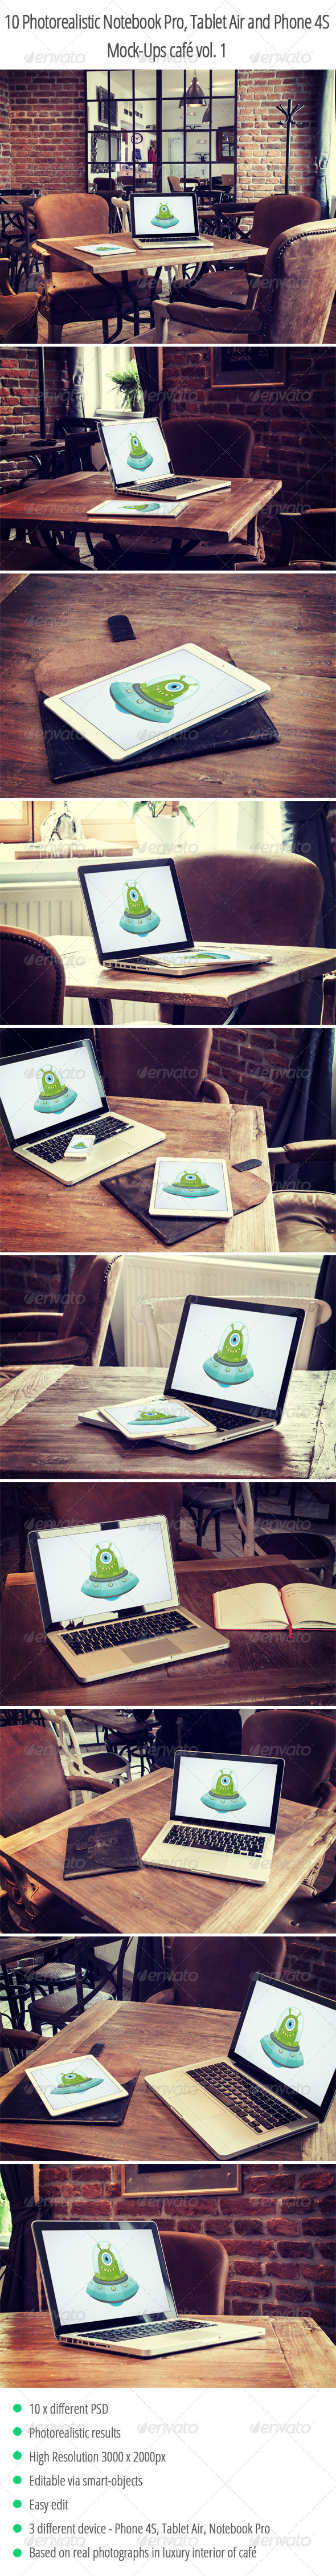 10 Photorealistic Device Mock-Ups in Cafe Vol.1